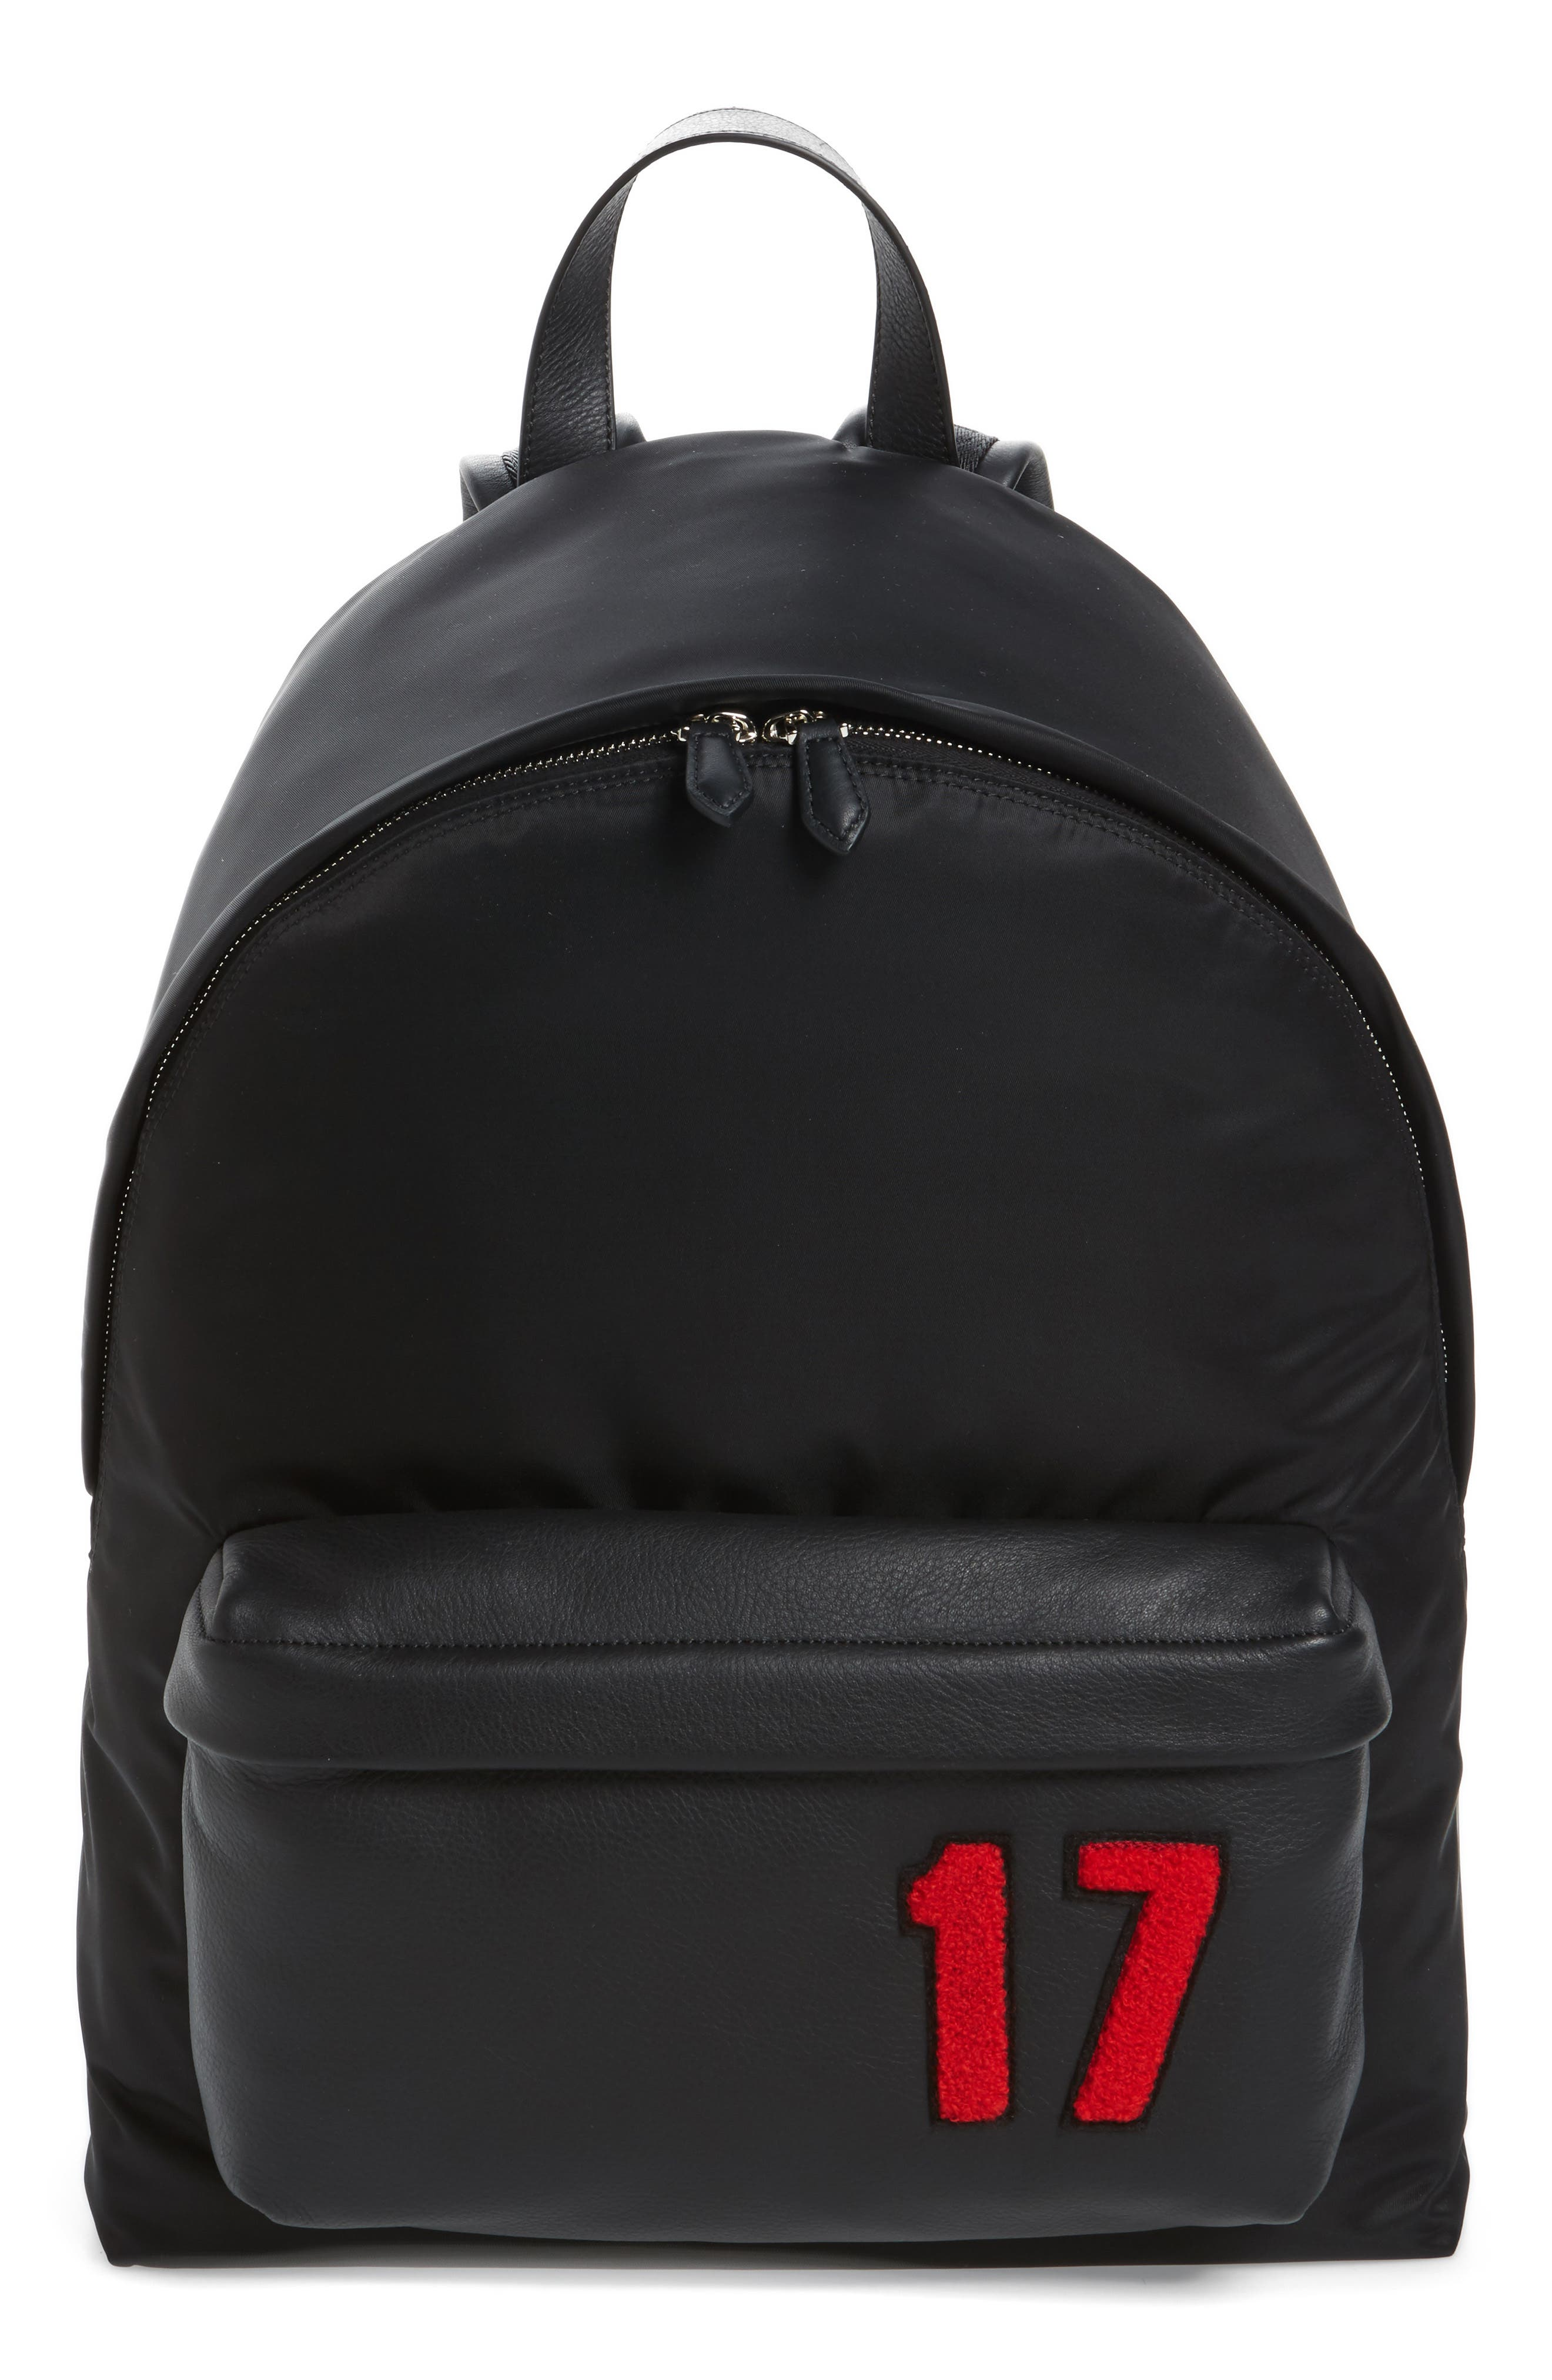 17 Patch Mix Media Backpack,                         Main,                         color, Black/ Red